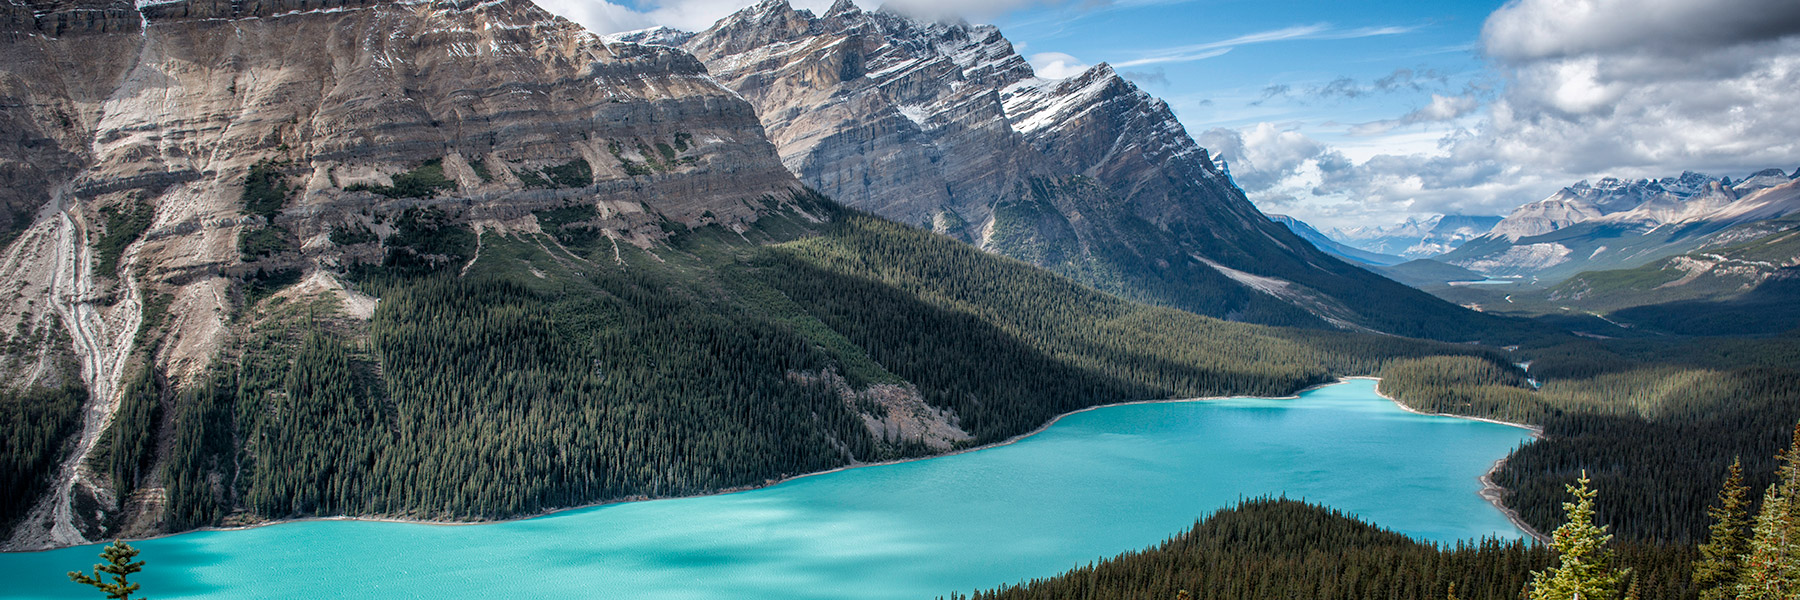 CANADA: Peyto Lake in Banff